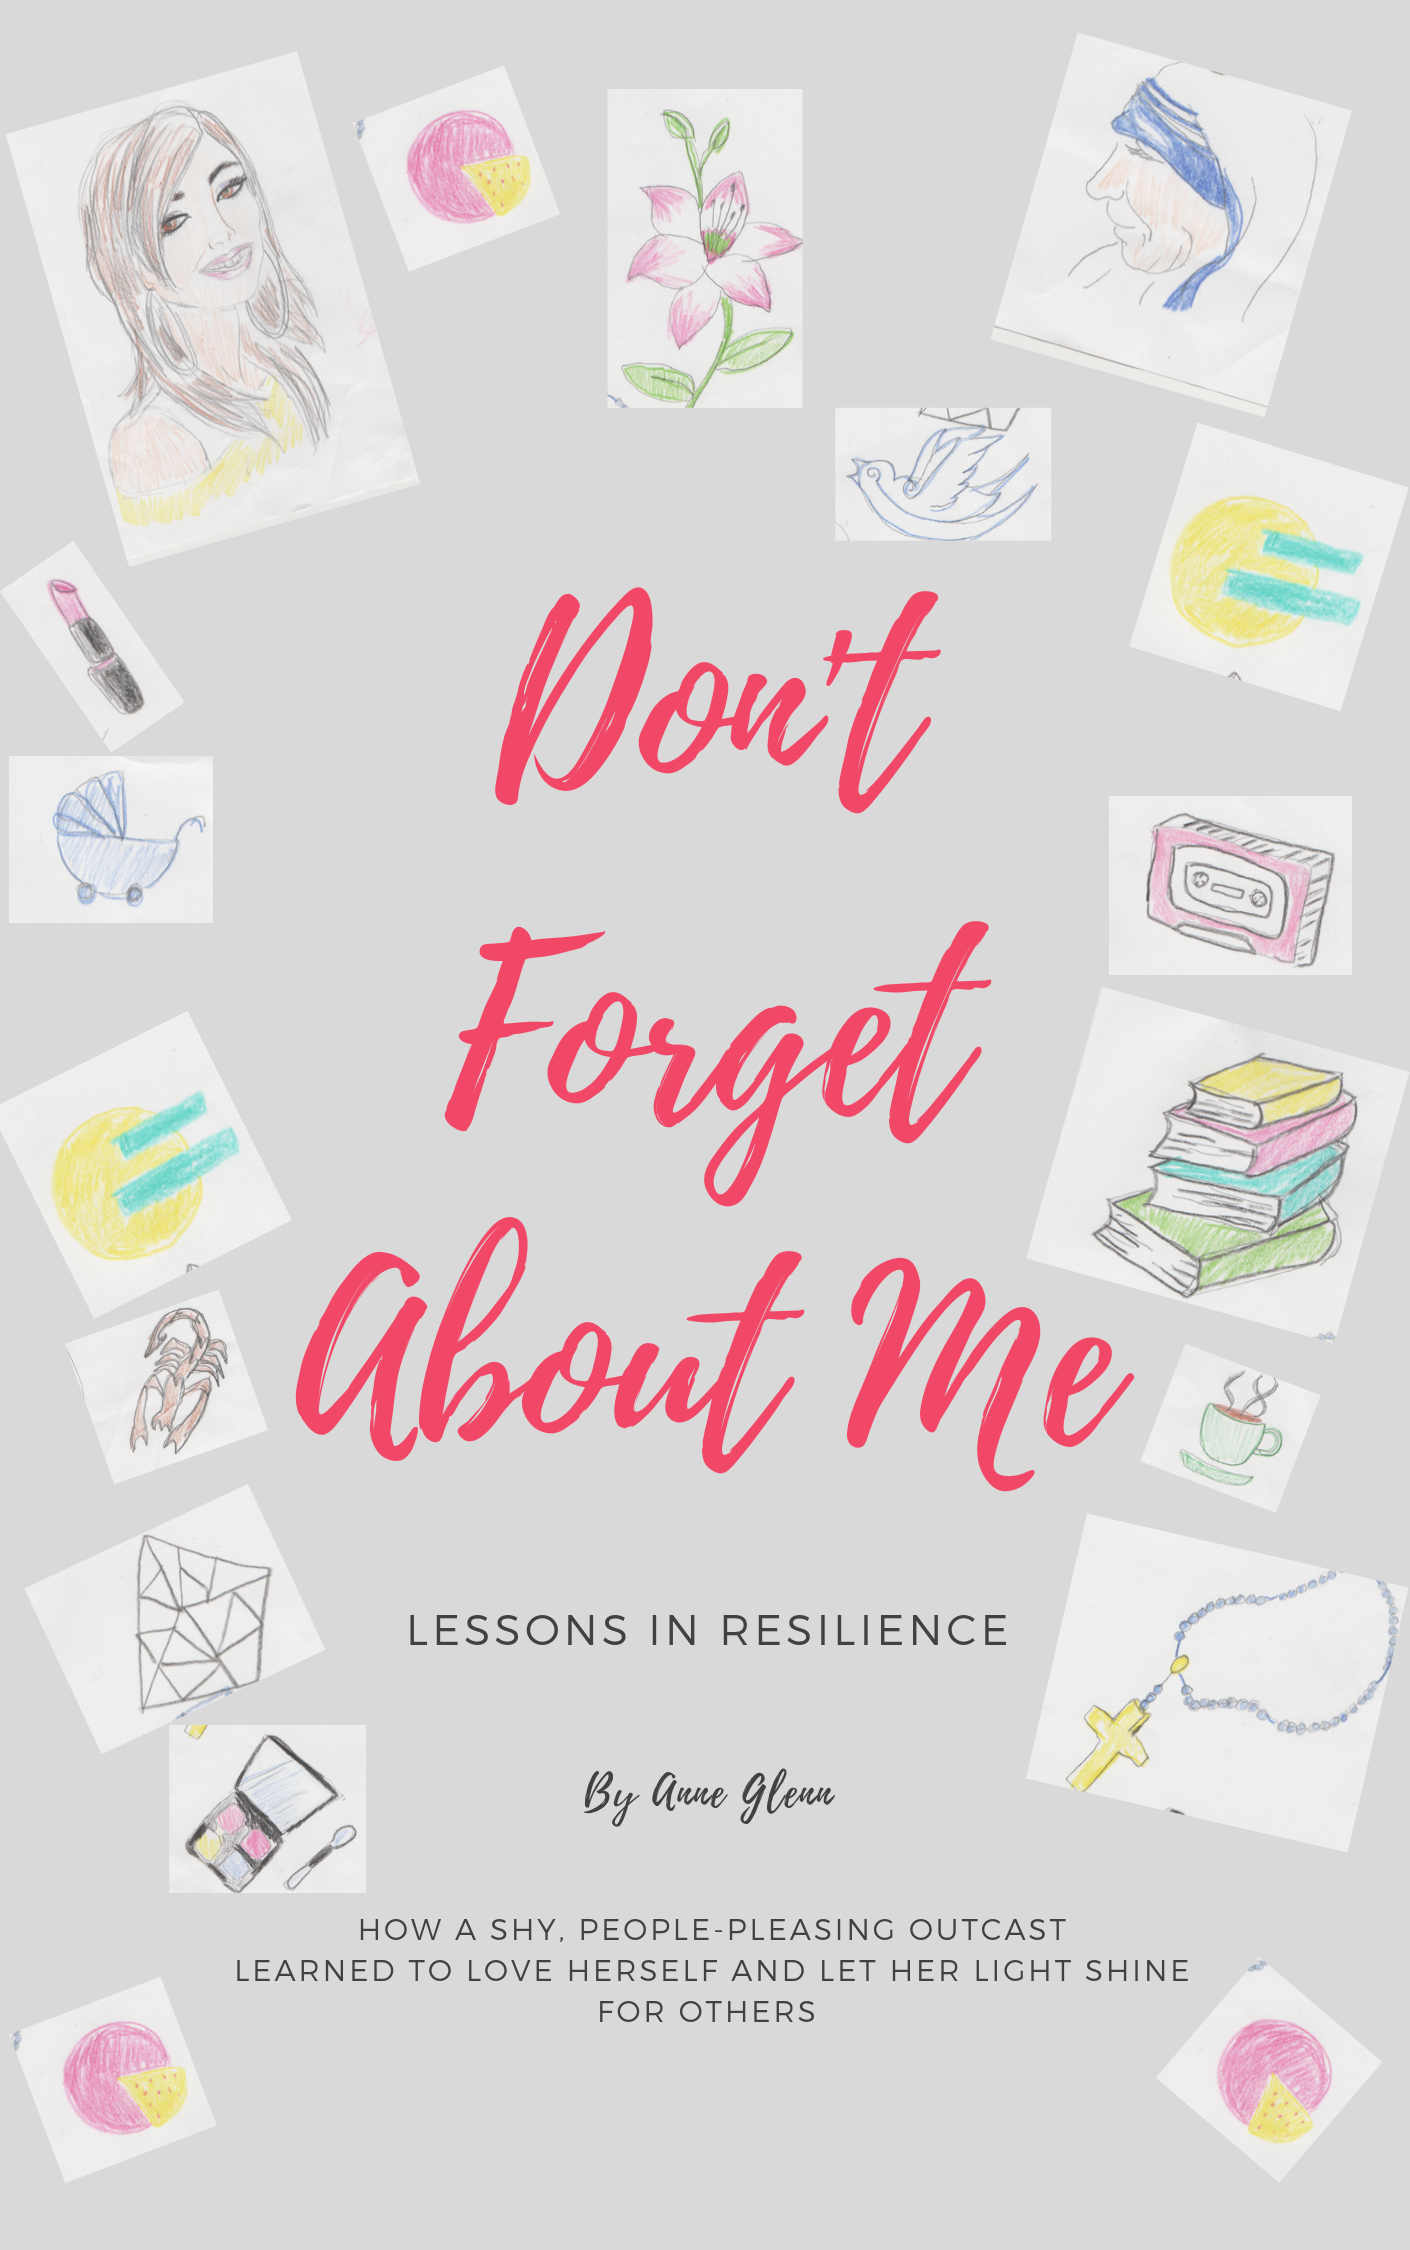 Book Cover: My New Book - Don't Forget About Me